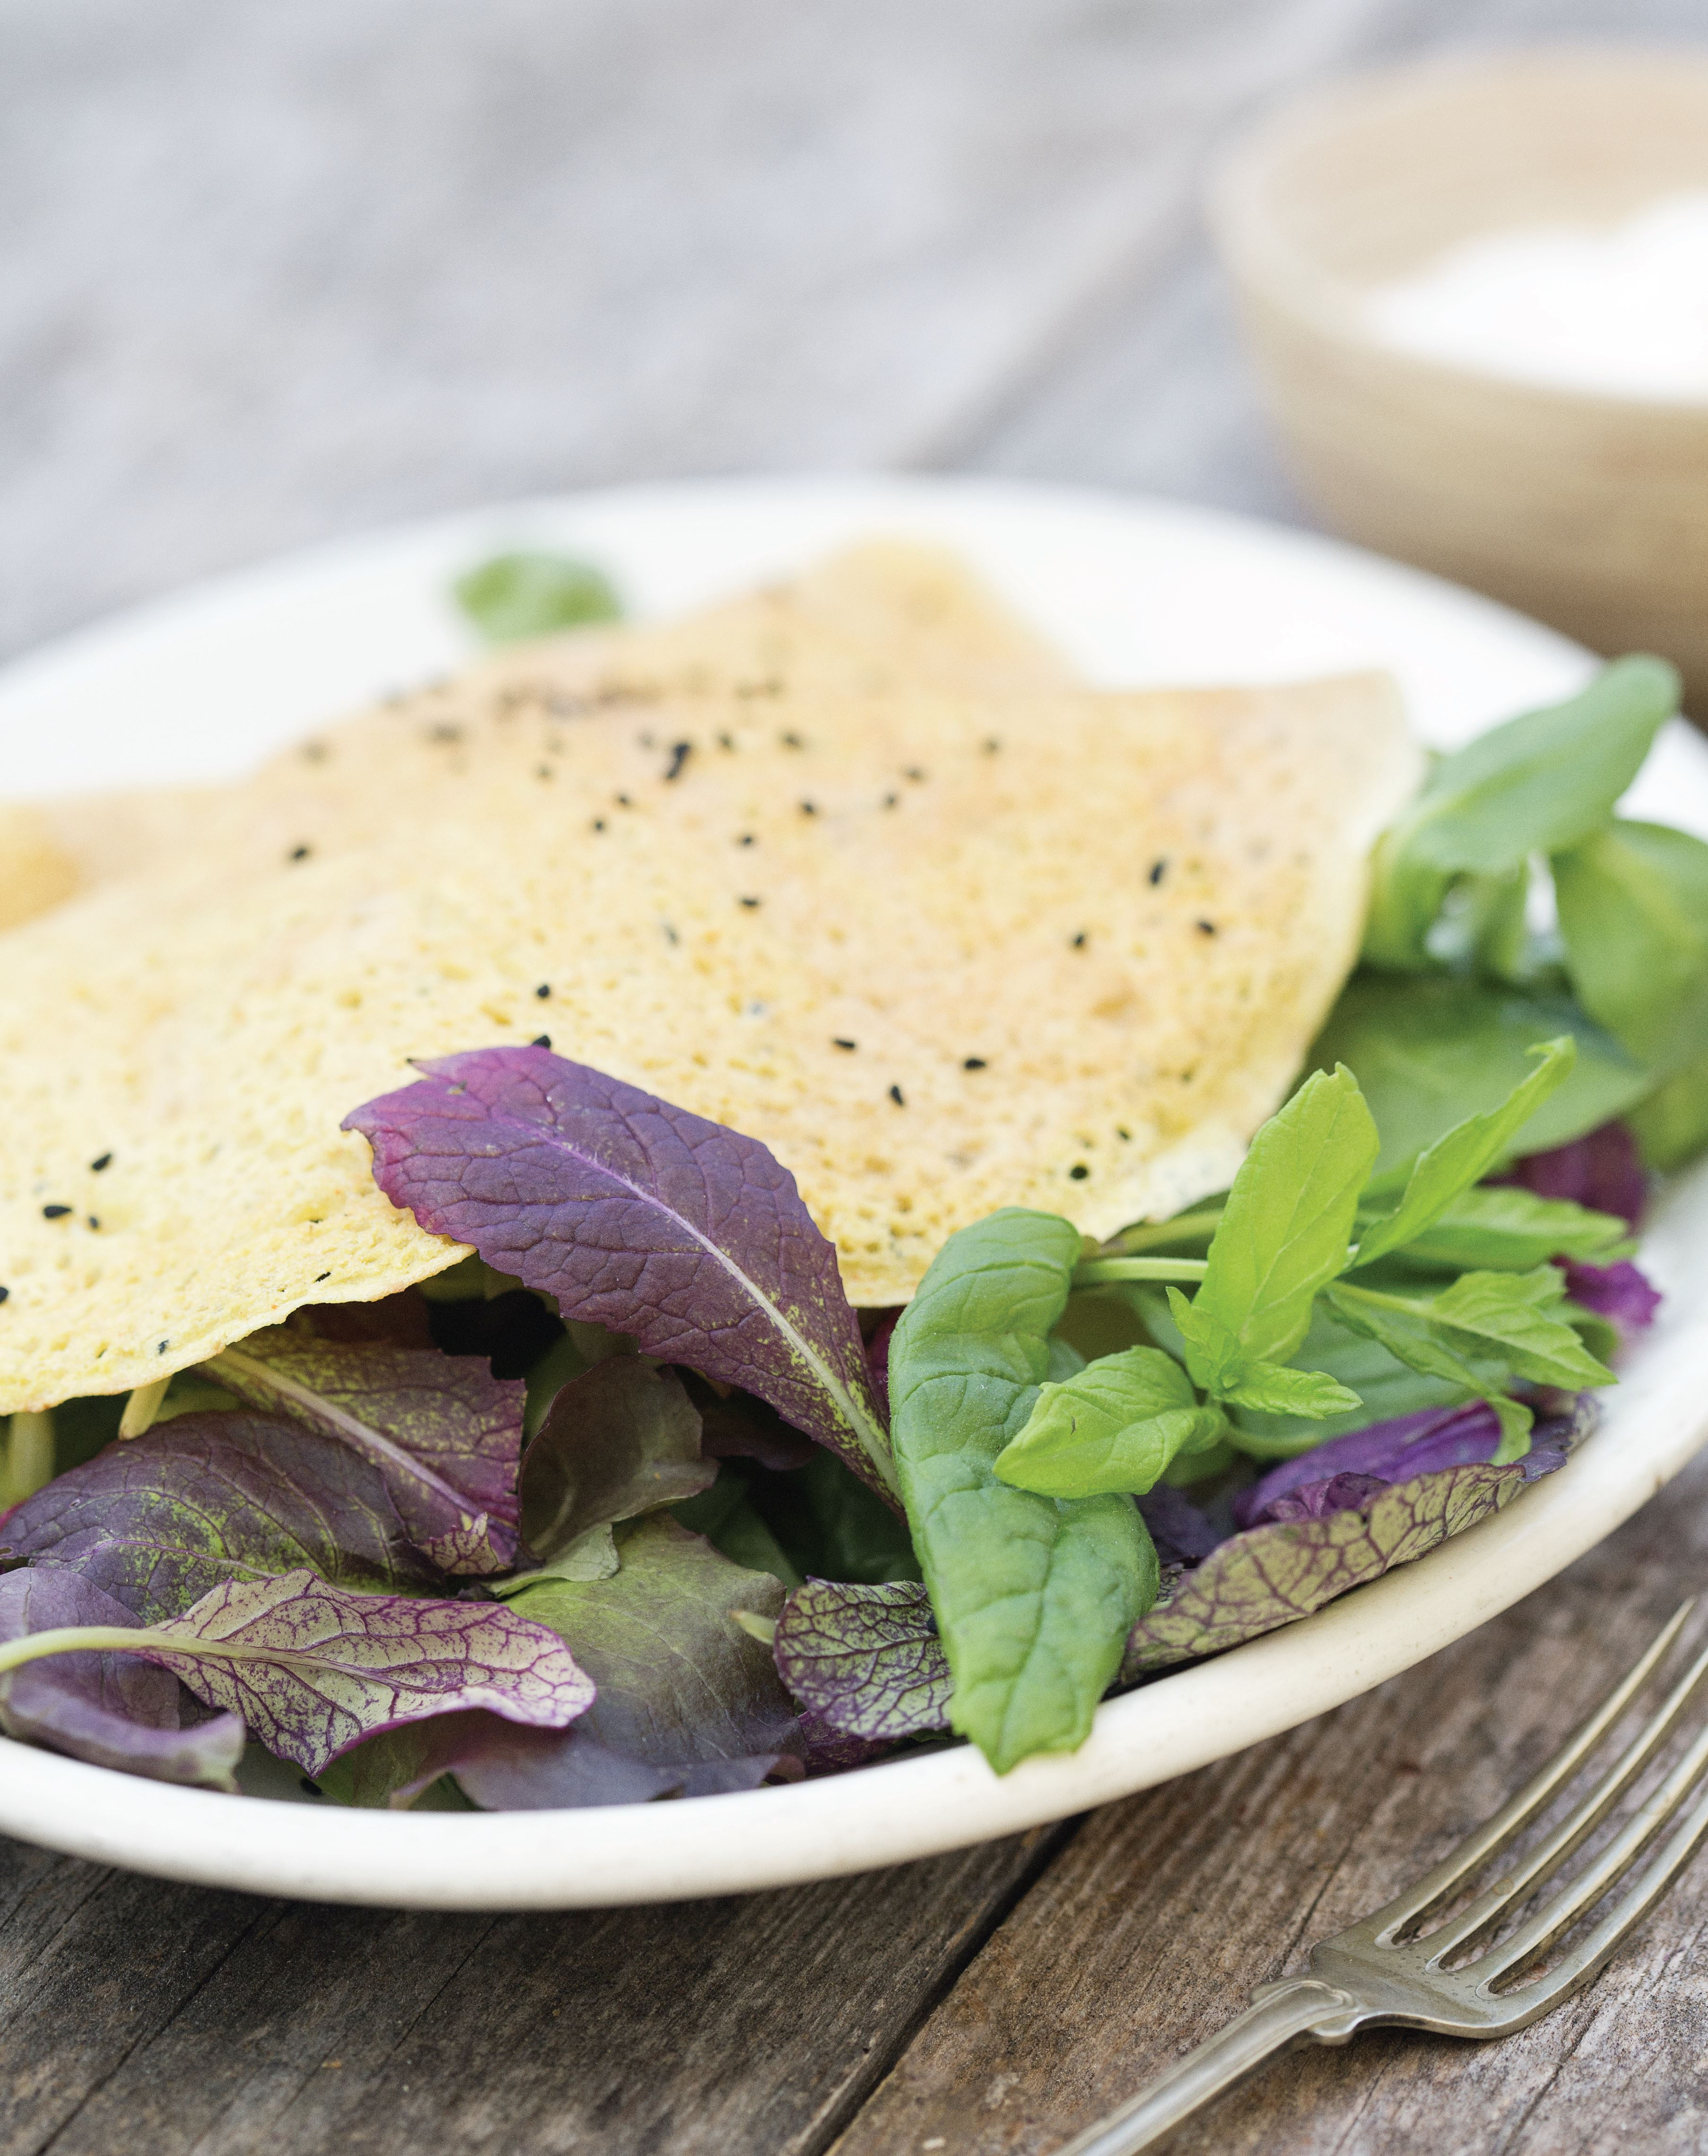 Indian chickpea crêpes with raita and leafy greens